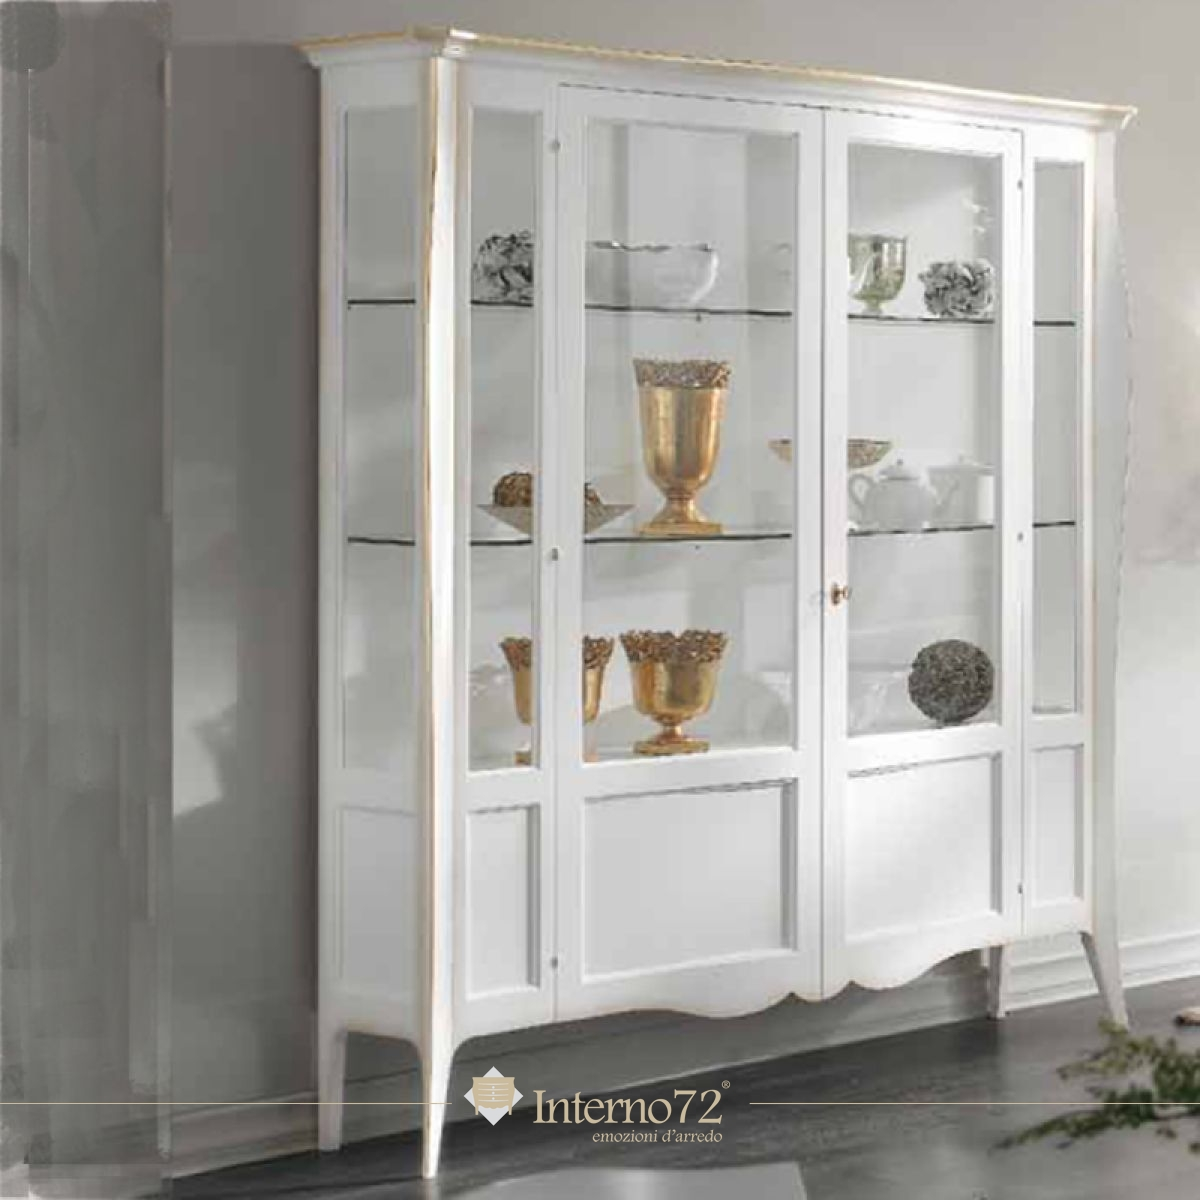 Mondo convenienza sala great mobili buffet mondo convenienza mobili per bagno classici for - Mobili per home theatre ...